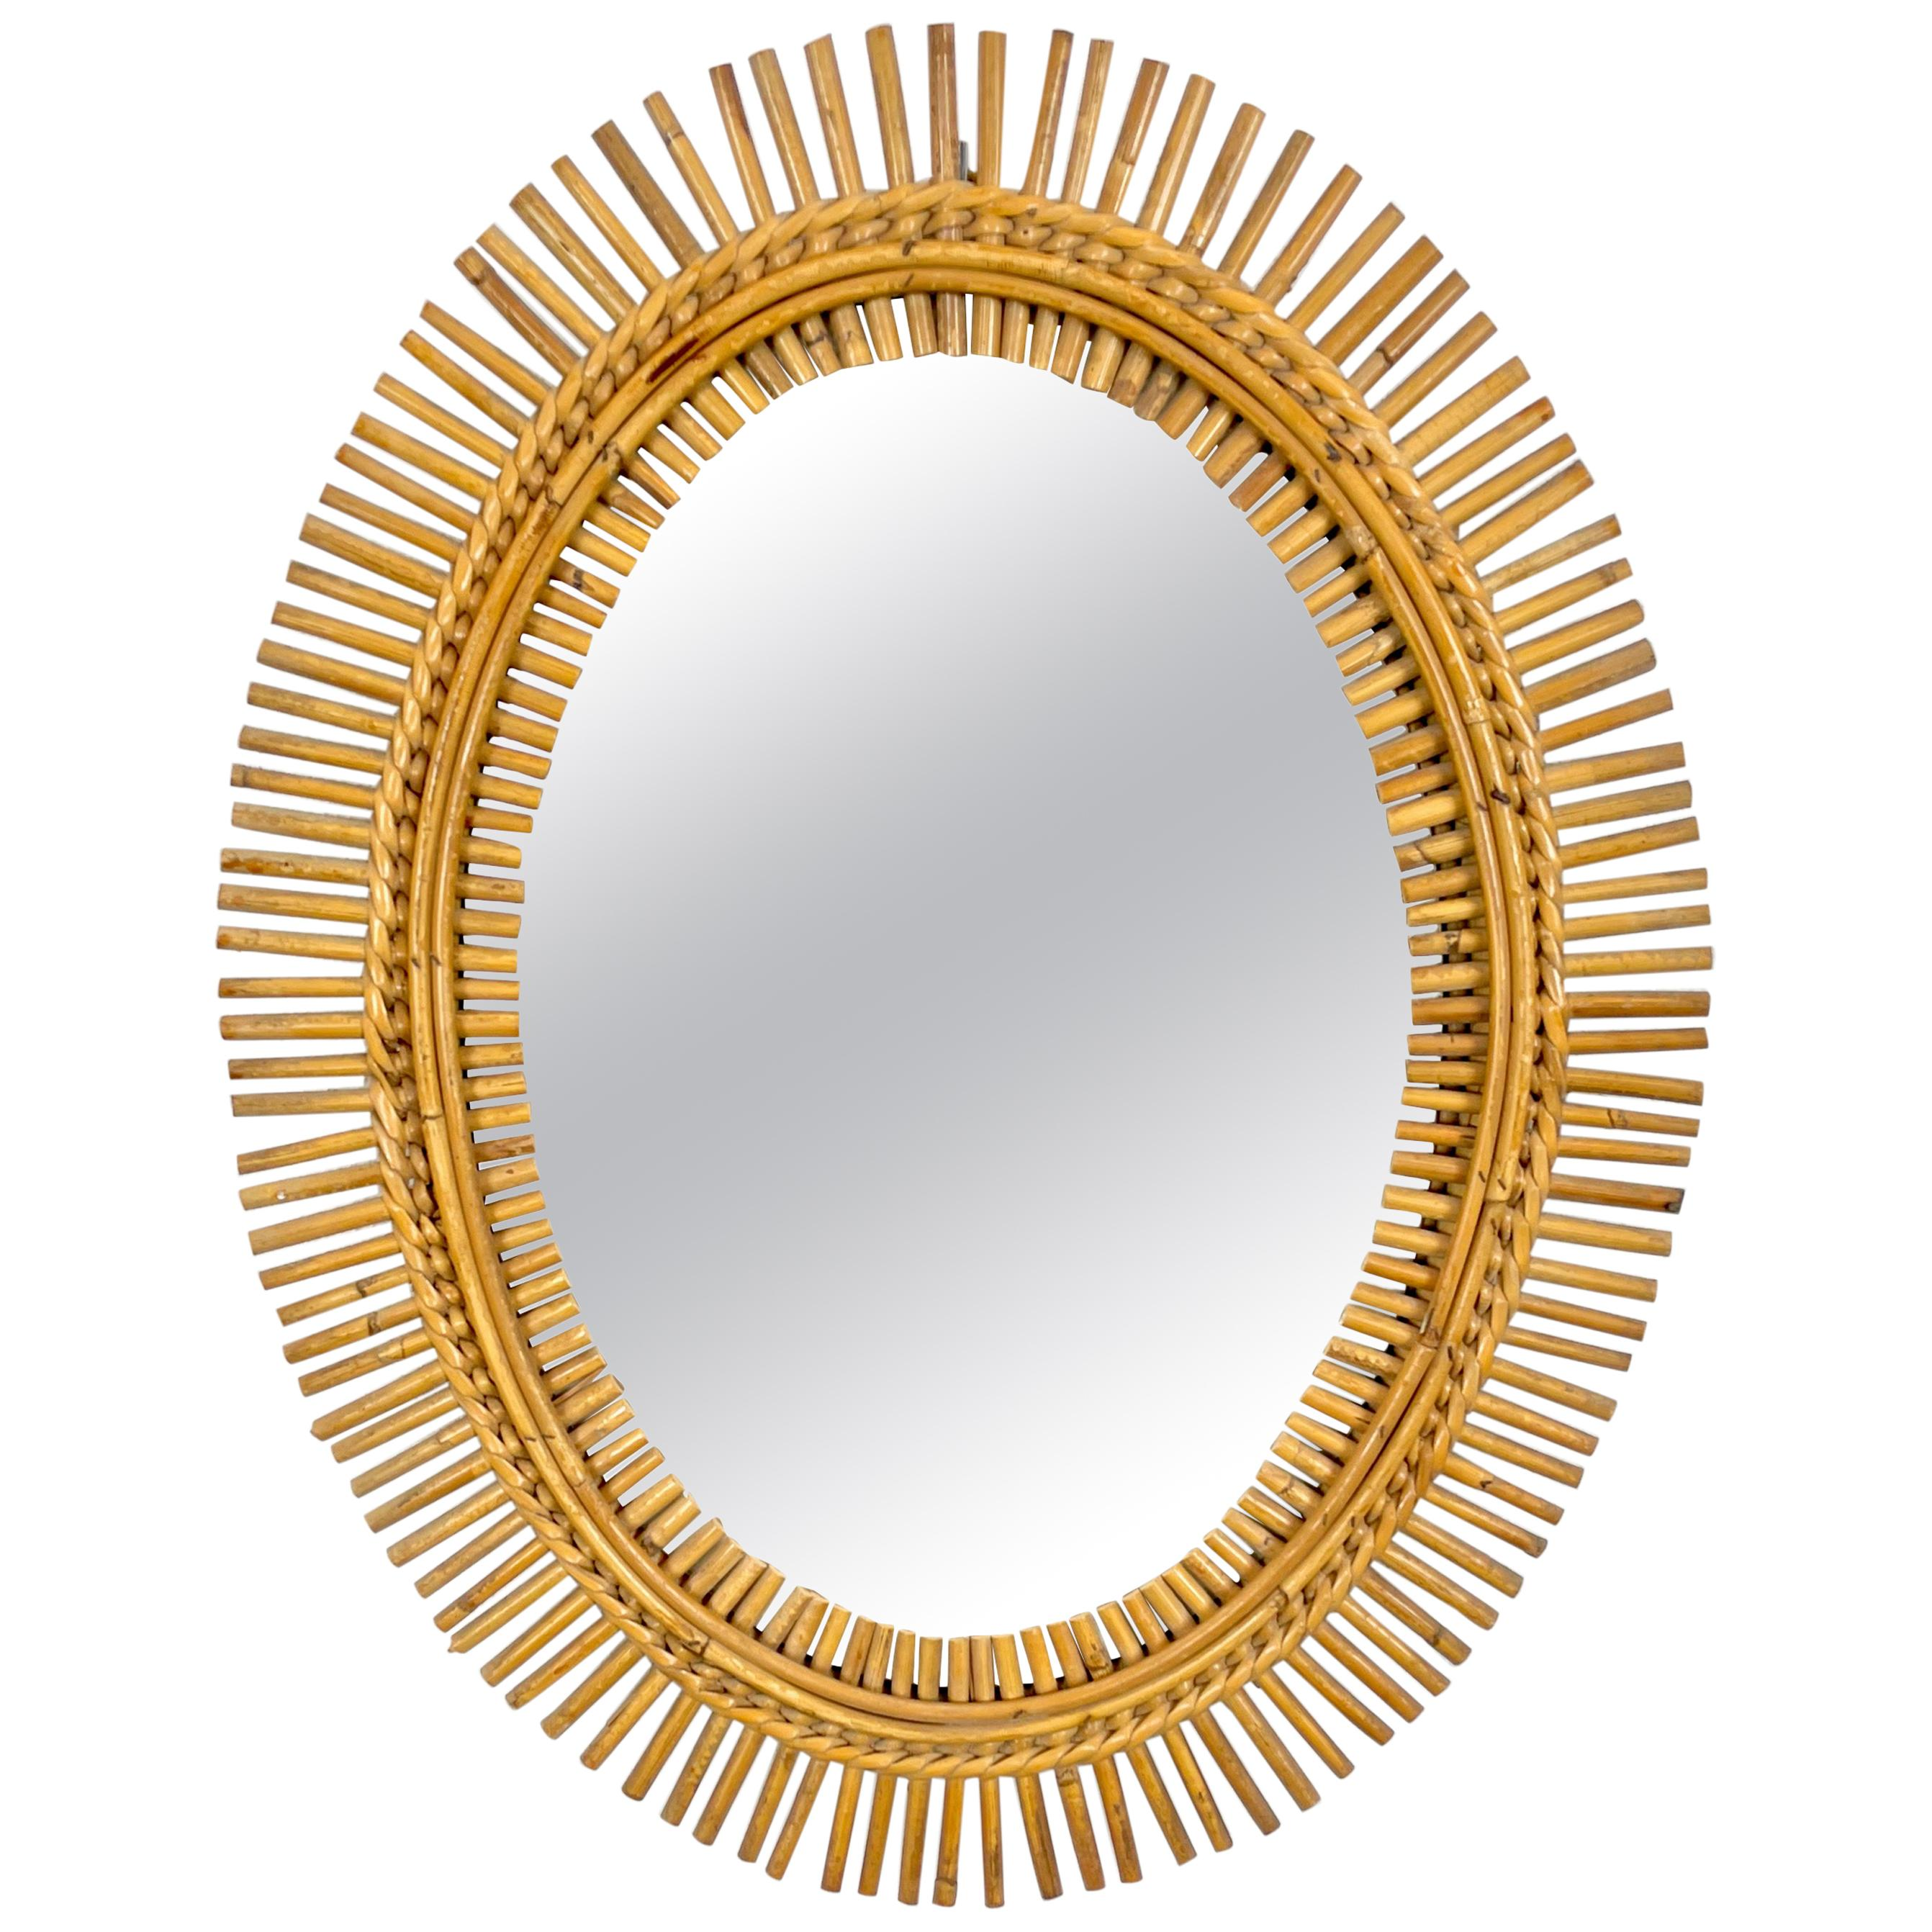 Rattan Bamboo Oval Wall Mirror, Italy, 1960s